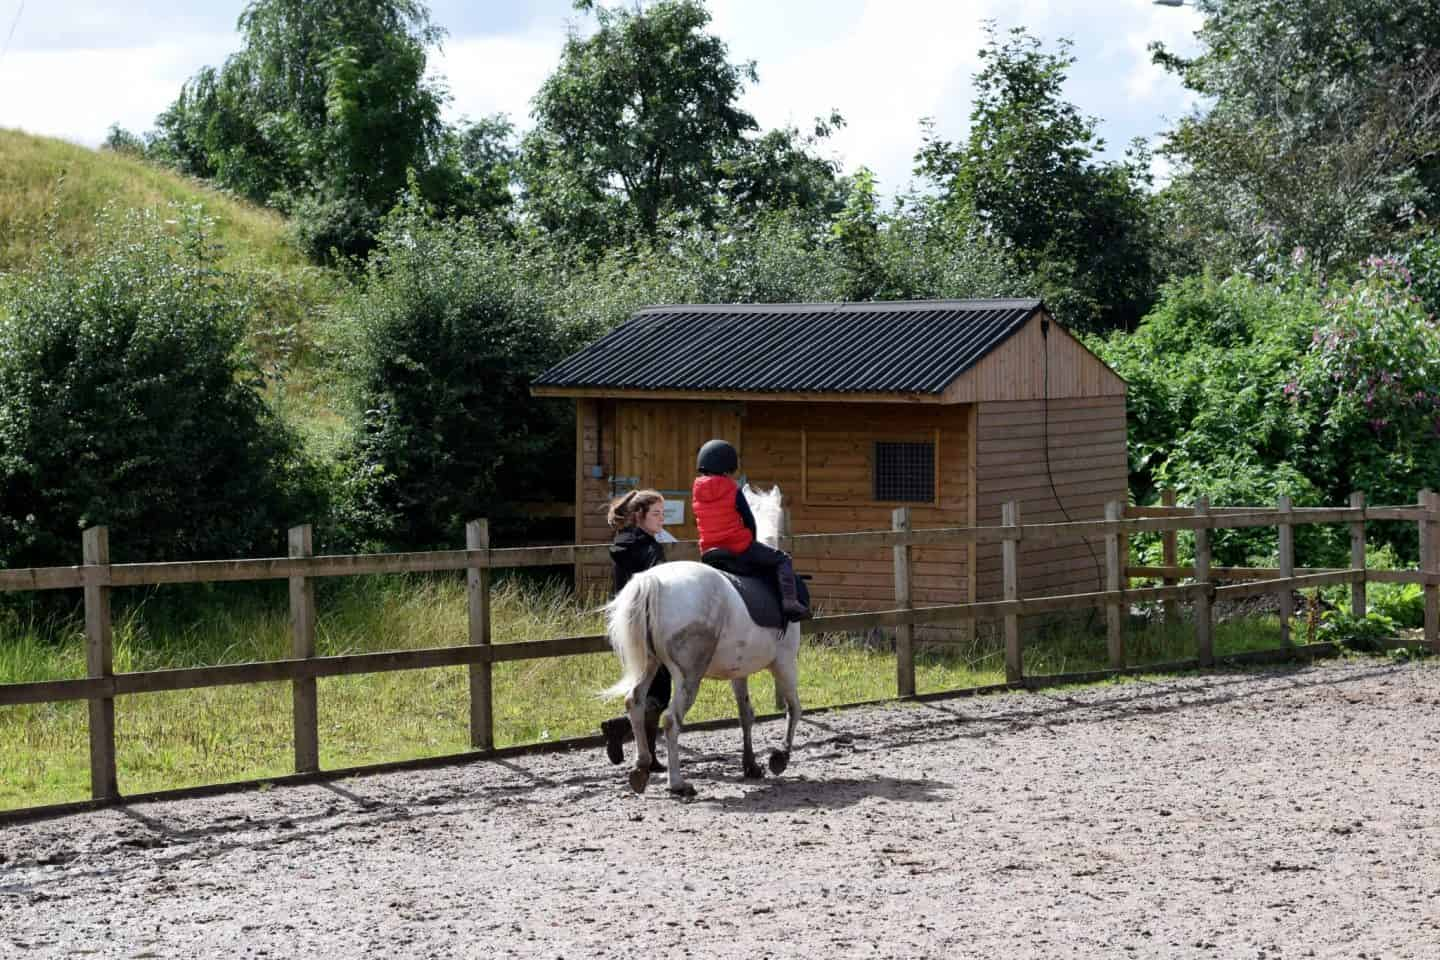 Daisy Nook riding school - trotting for the first time